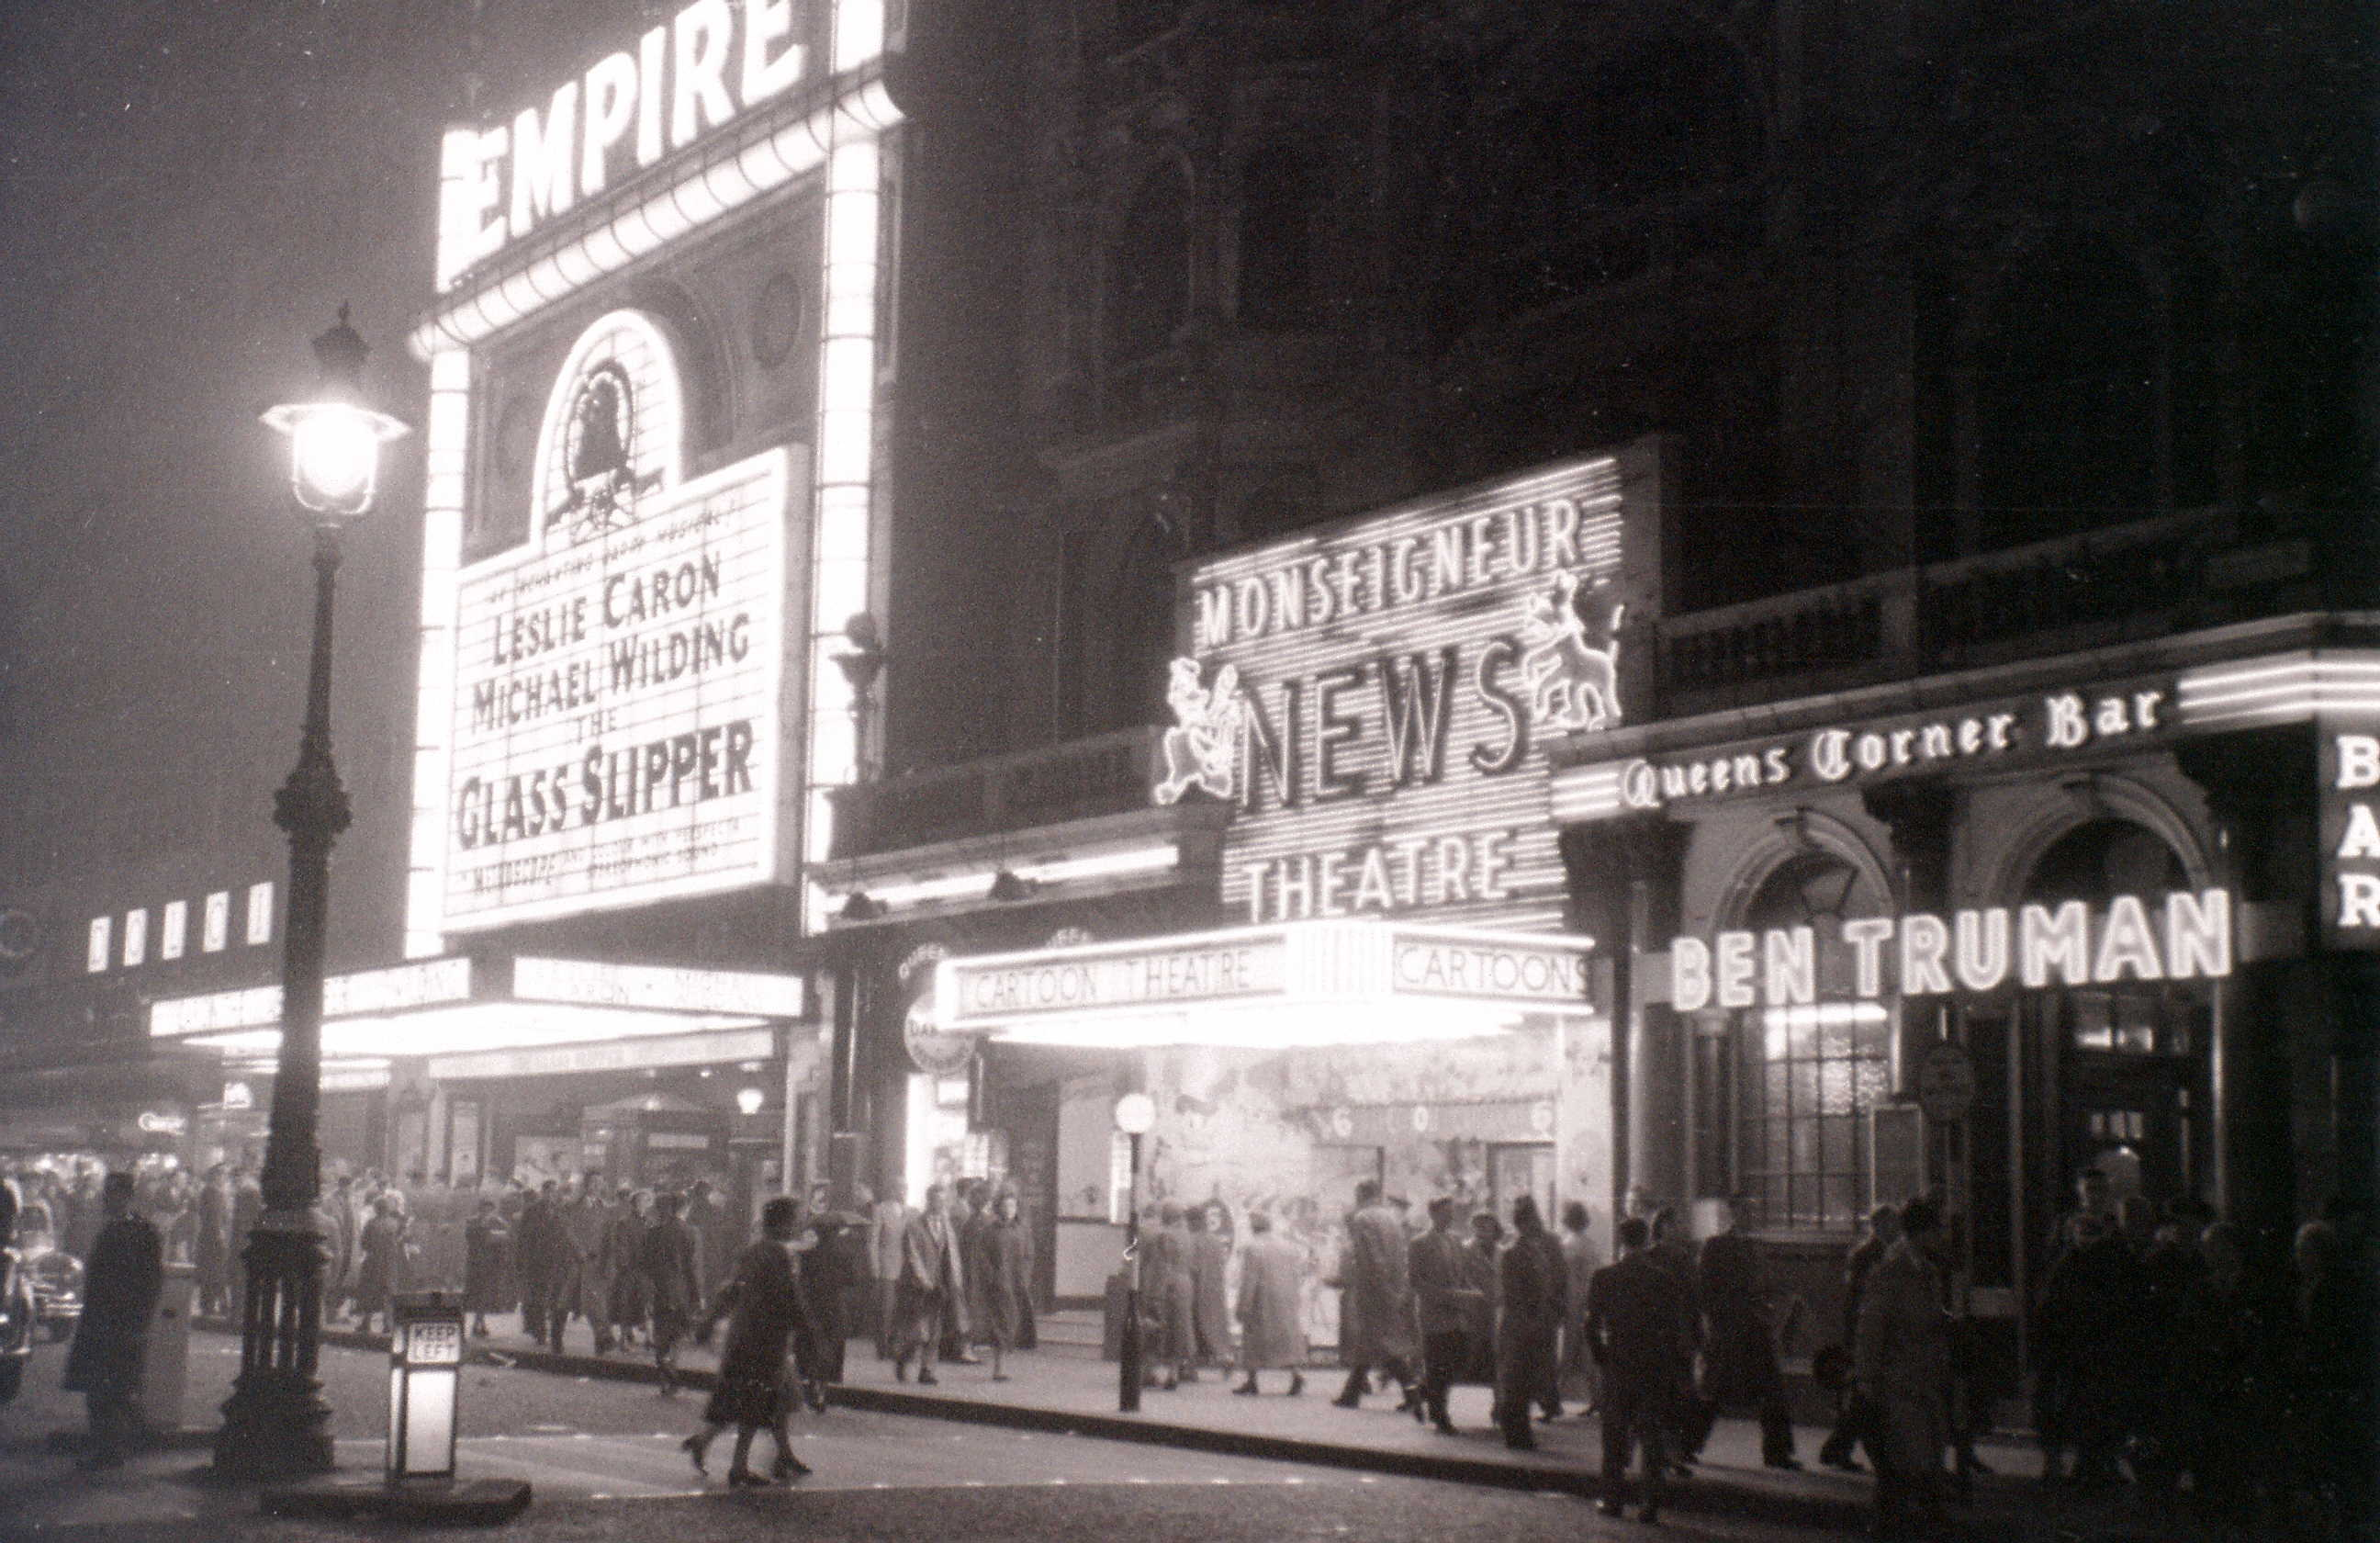 Leicester Square, London, 5 November 1955